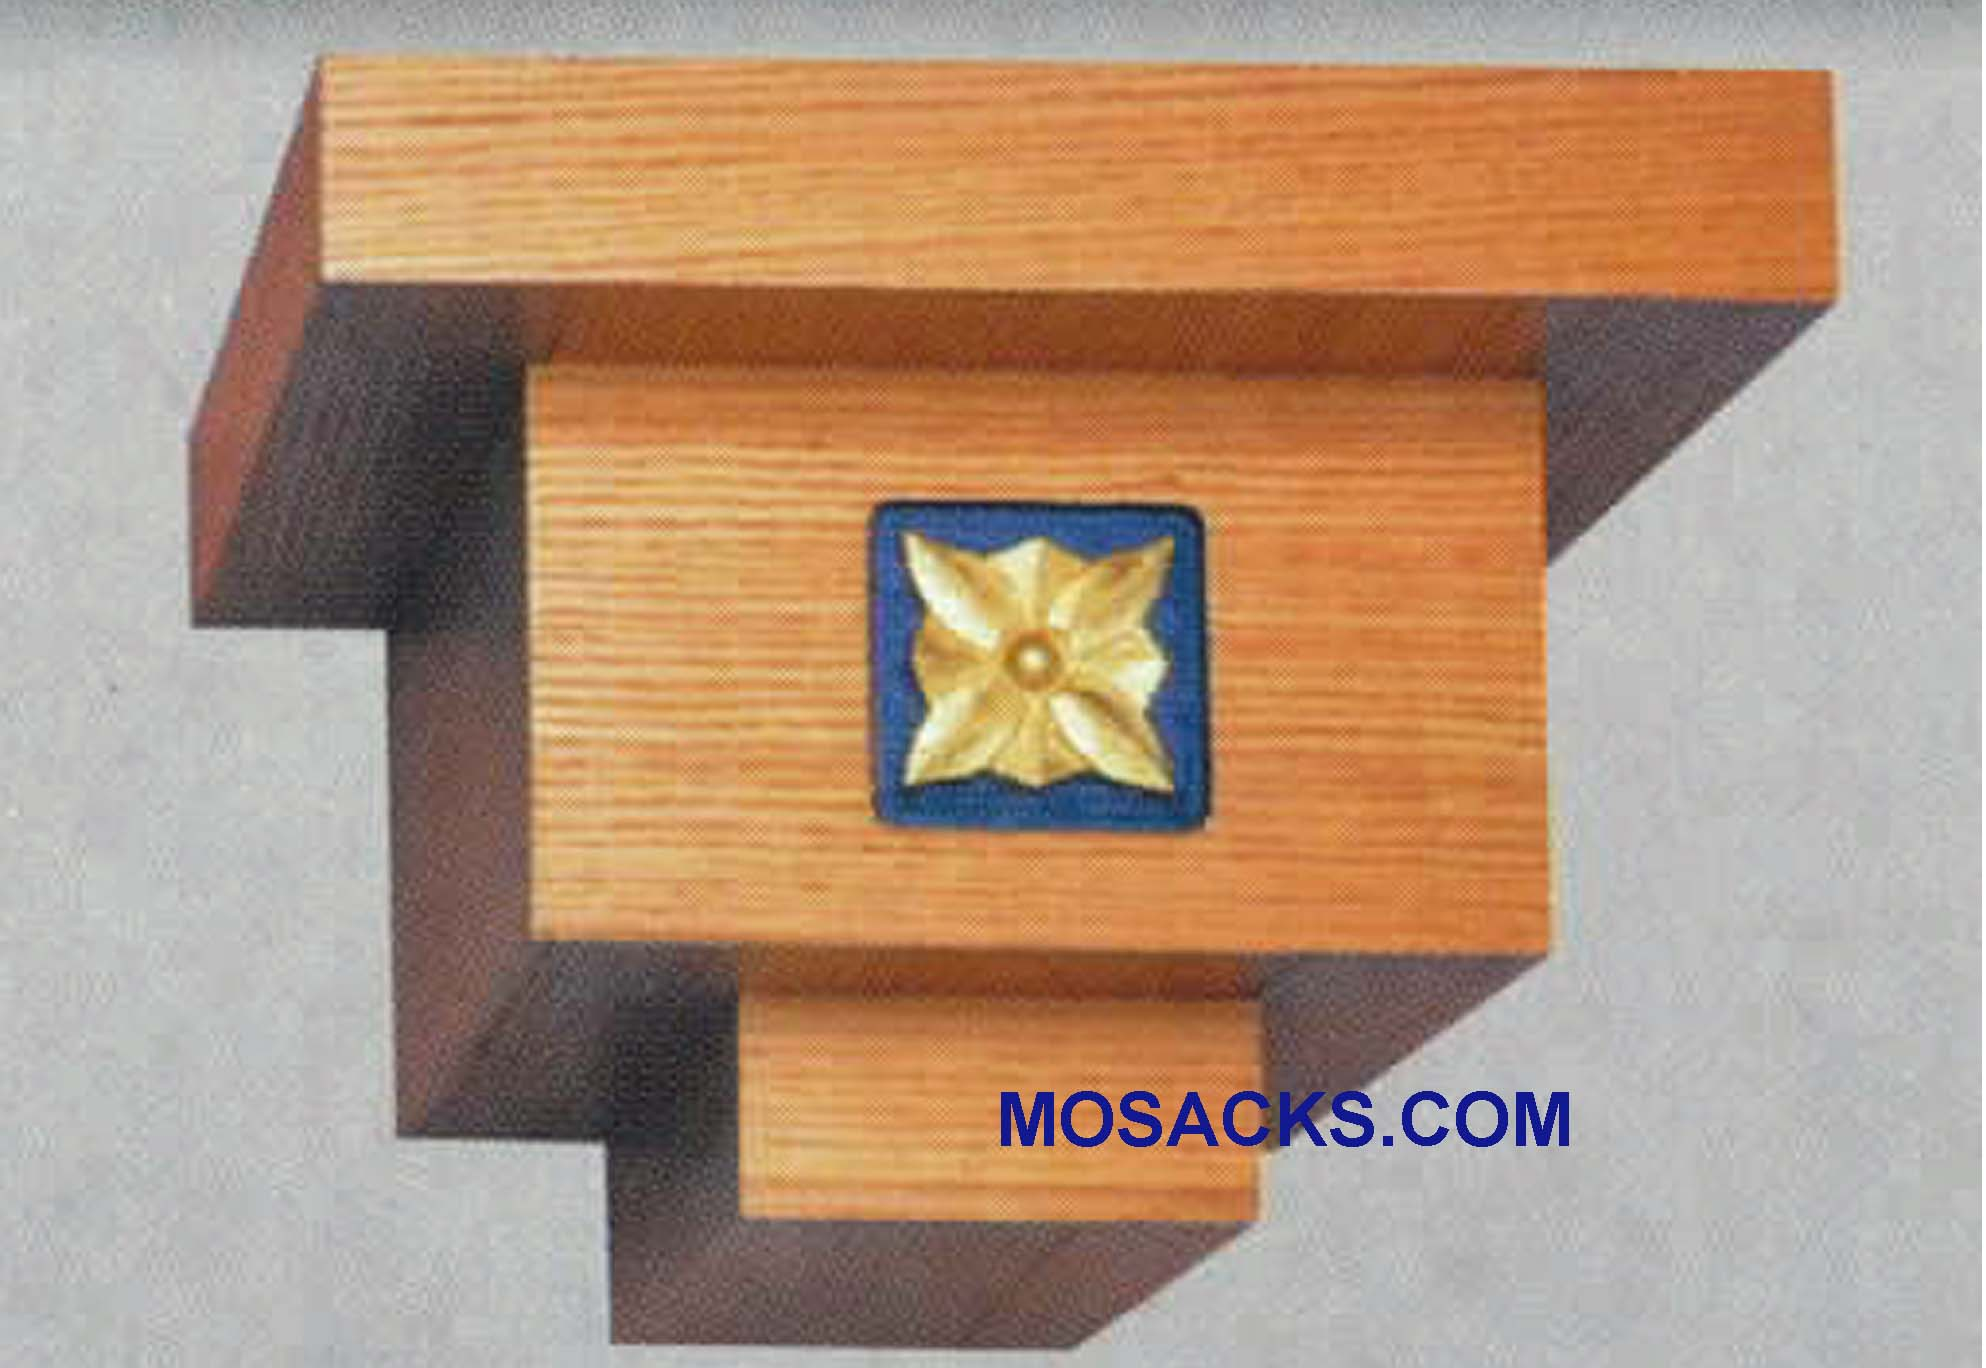 "Wooden Wall Mount Pedestal  20""w x 19""d, 14-1/2""h #4G16-G W Brand Church Furniture at Mosack's"